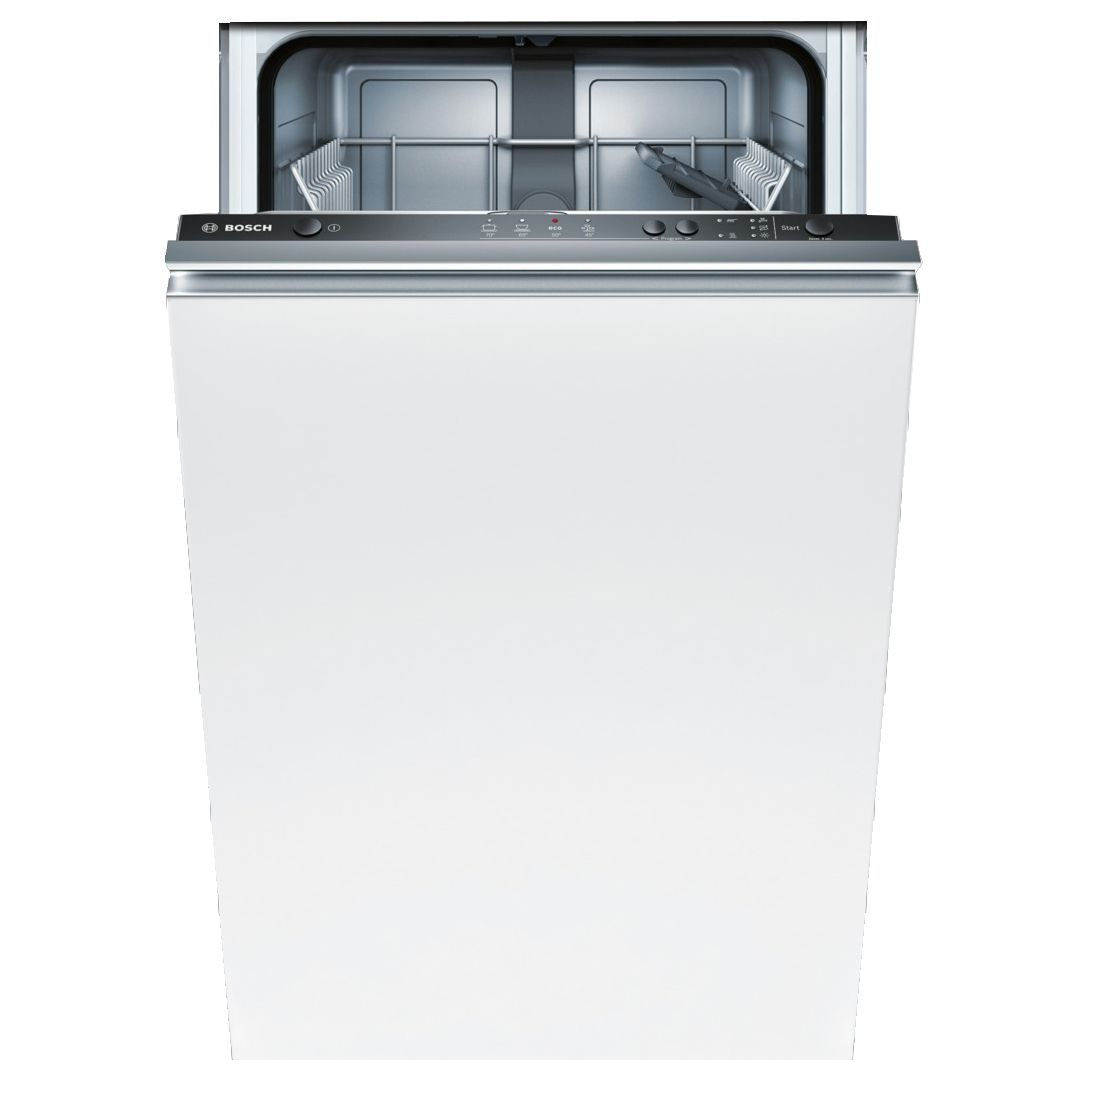 Bosch Smv40c20gb Standard Built In Dishwasher White Rooms Diy